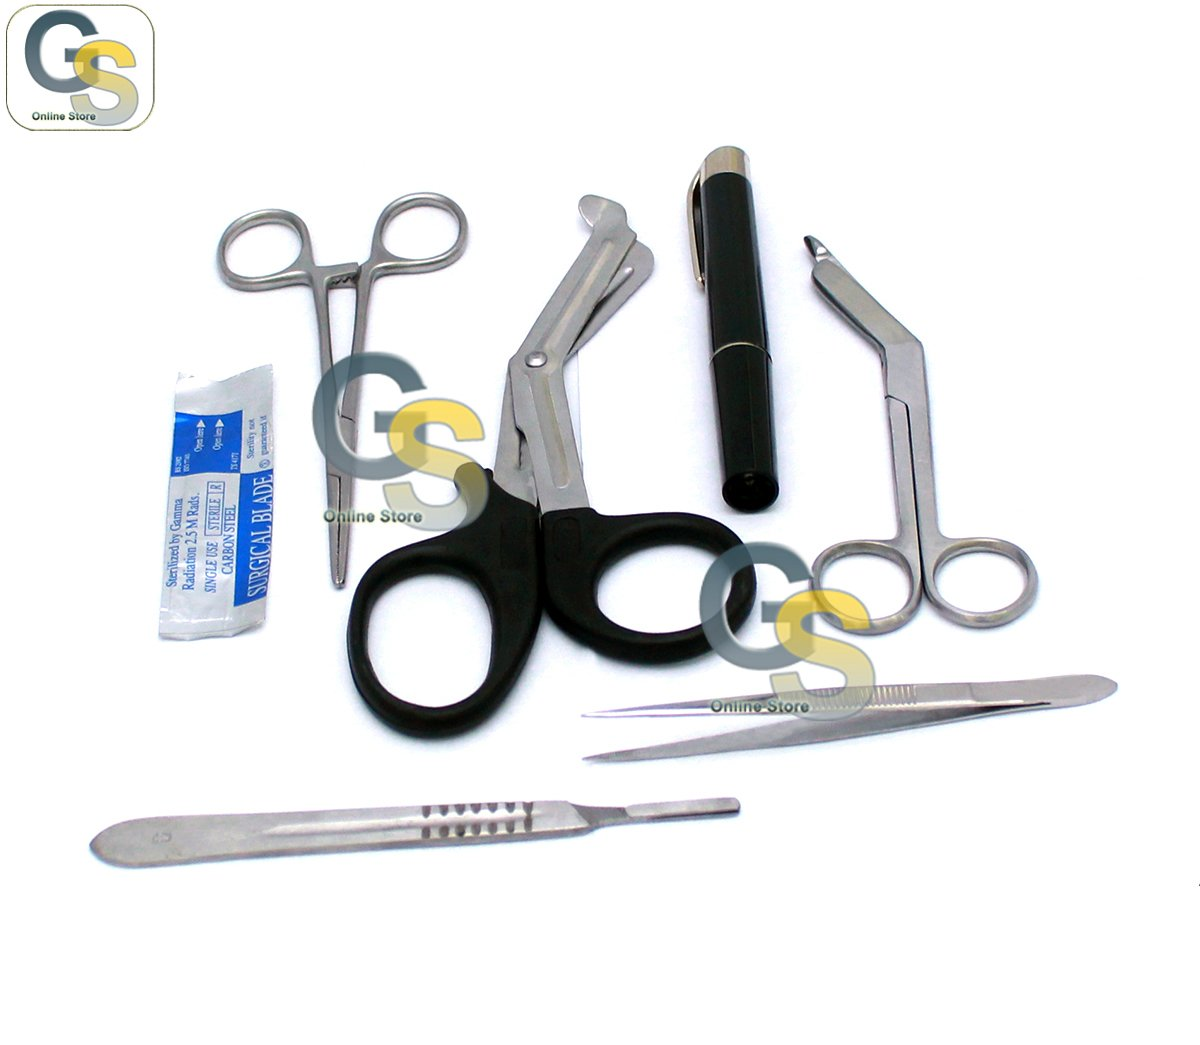 6 PCS FIRST AID RESPONSE KIT WITH 5 SCALPEL HANDLE BLADE #20 (GSI BRAND) by GSI